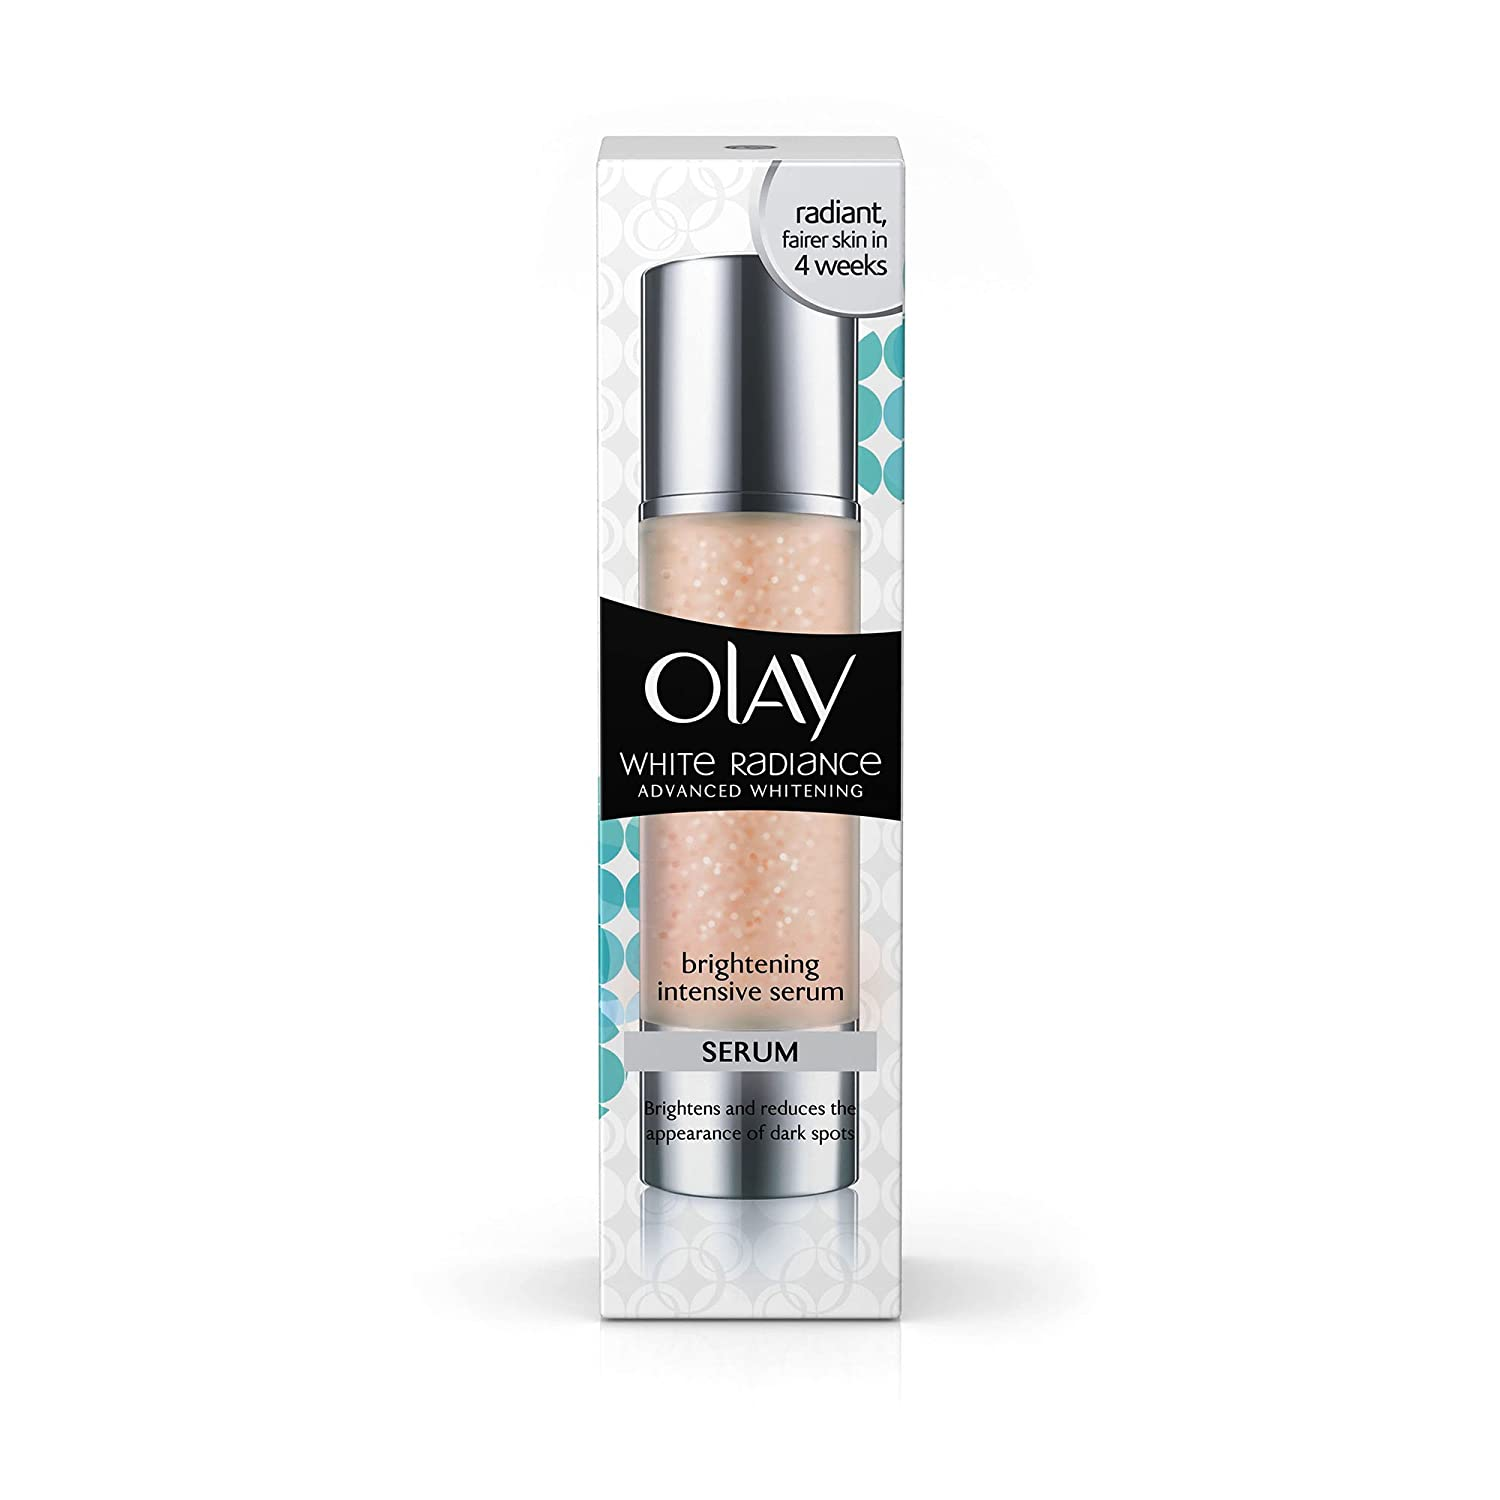 Olay White Radiance Brightening Intensive Serum